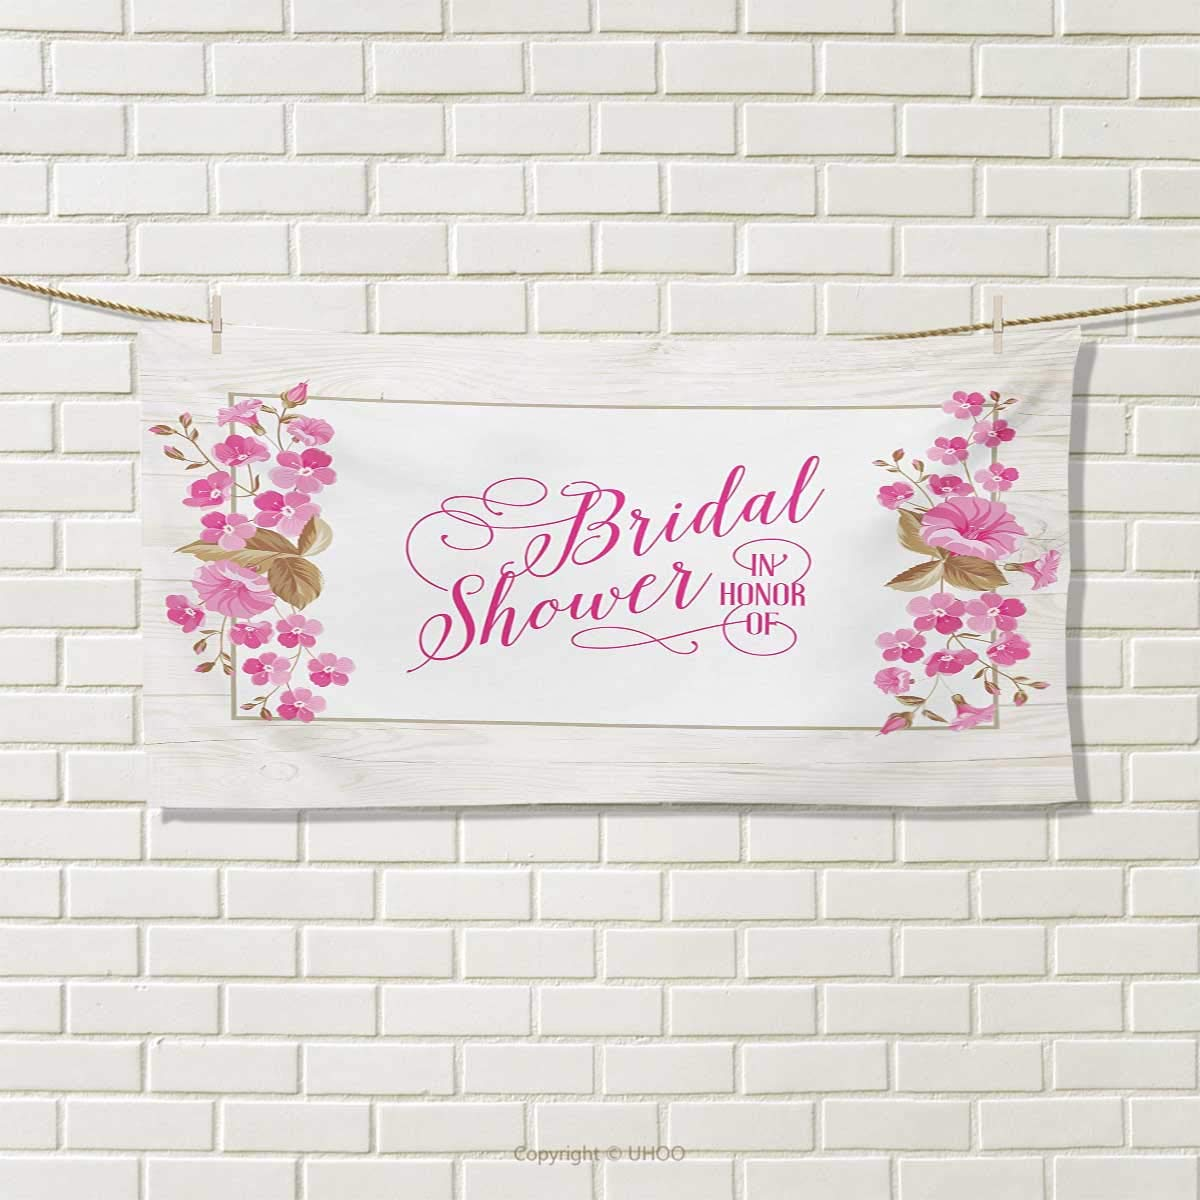 Chaneyhouse Bridal Shower,Hair Towel,Celebration Bride Party Card Inspired Floral Leaves Frame Image,Quick-Dry Towels,Lilac Hot Pink and Green Size: W 8'' x L 23.5''